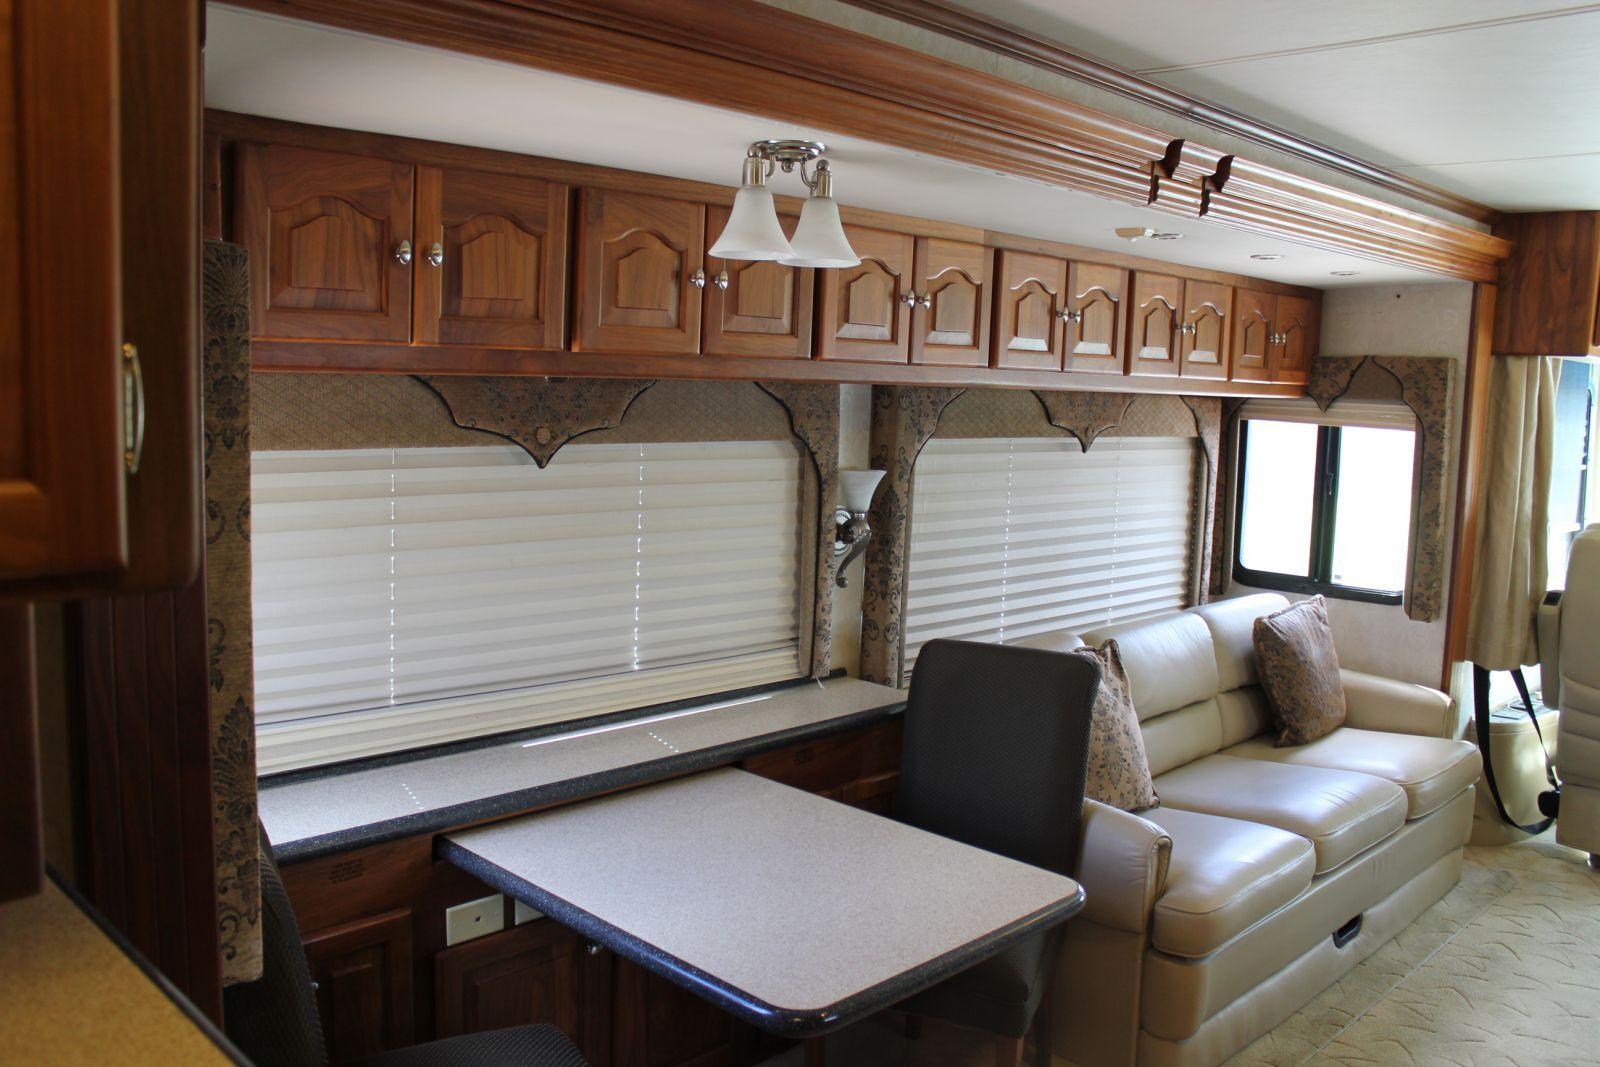 (Sample) The living area of a 2005 Tiffin Allegro Bus